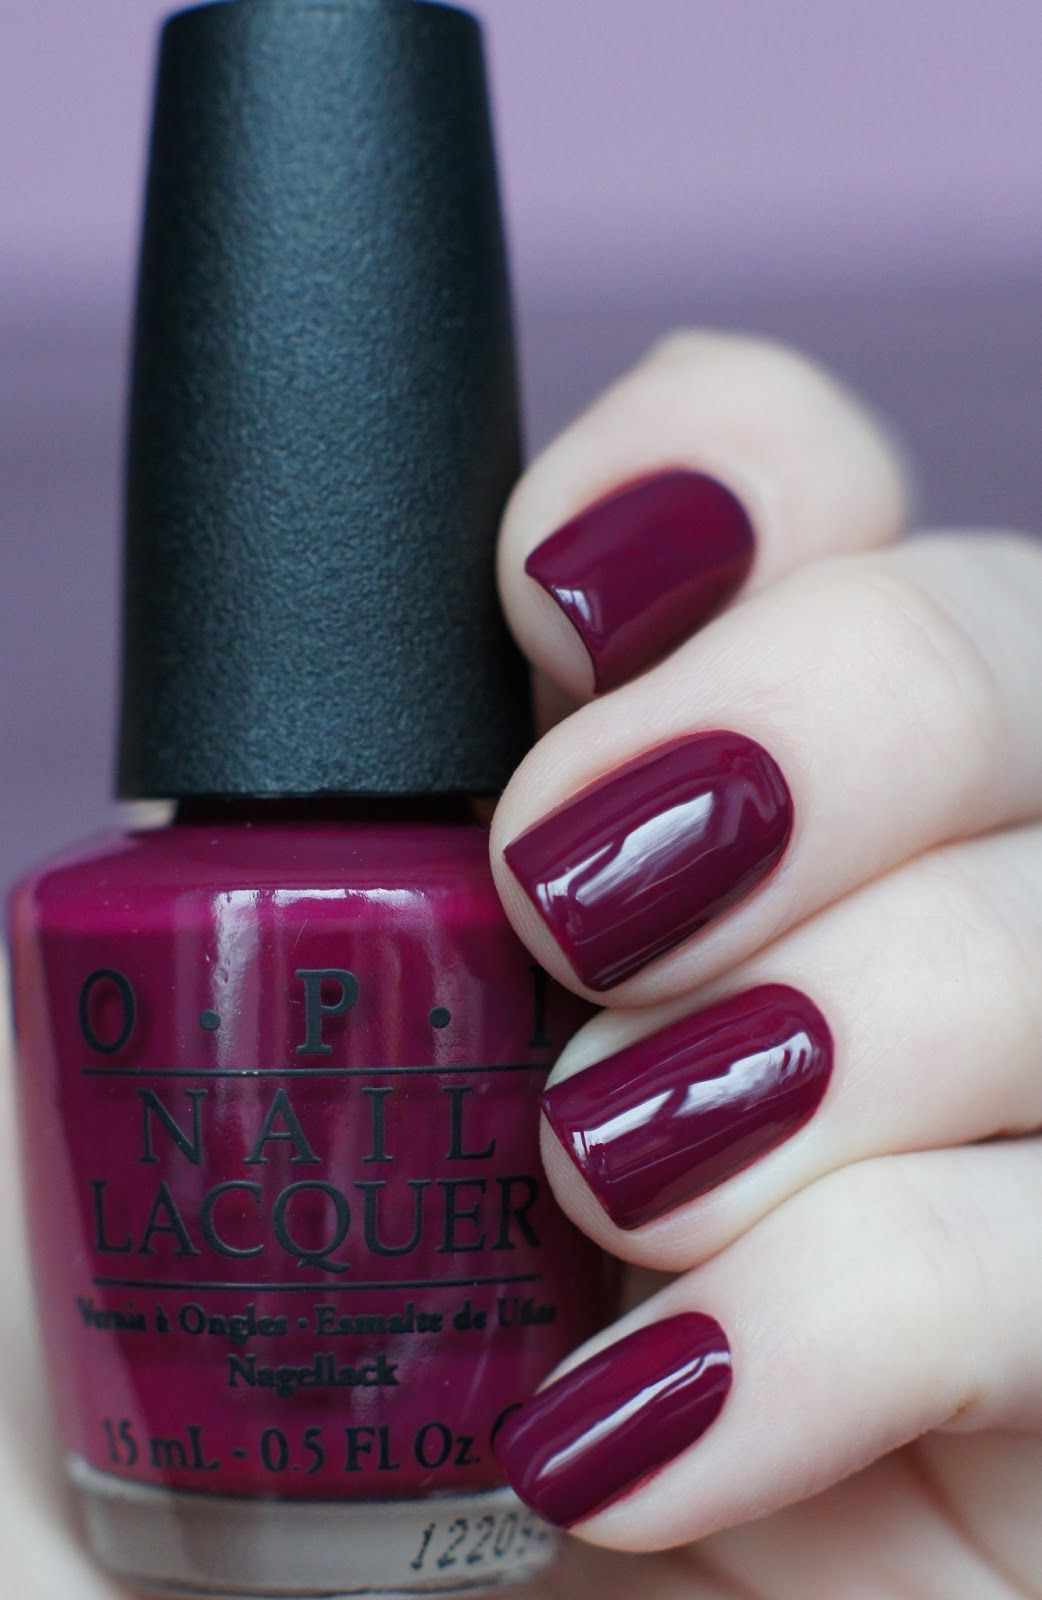 OPIus Casino Royale is the perfect wine tinged hue for nails